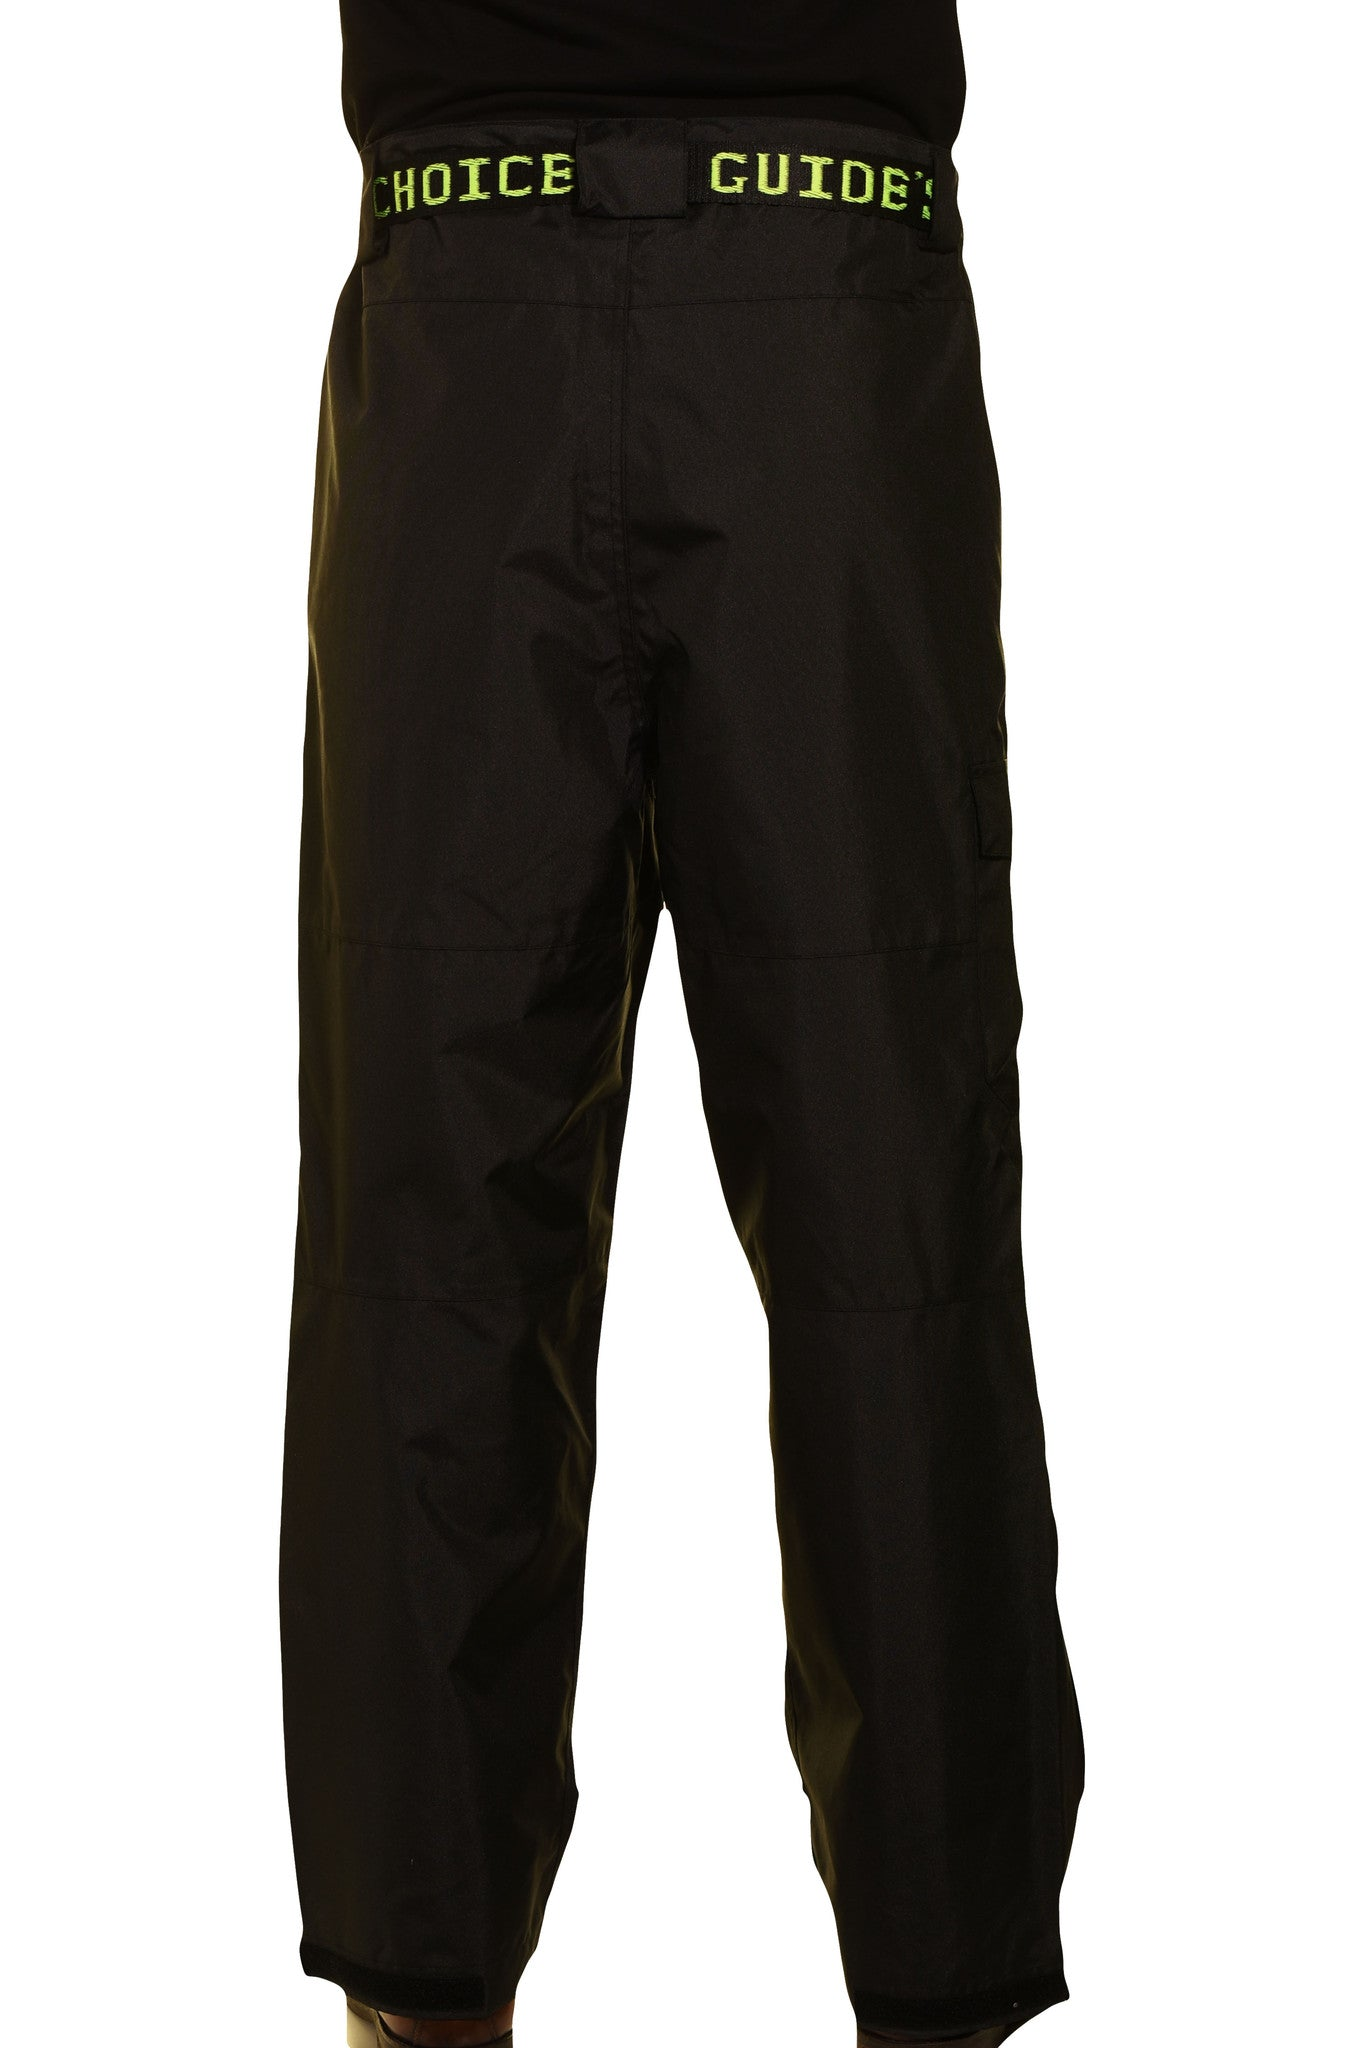 Guides Choice Mens Breathable Waterproof Seattle Storm Watch Pants - Black